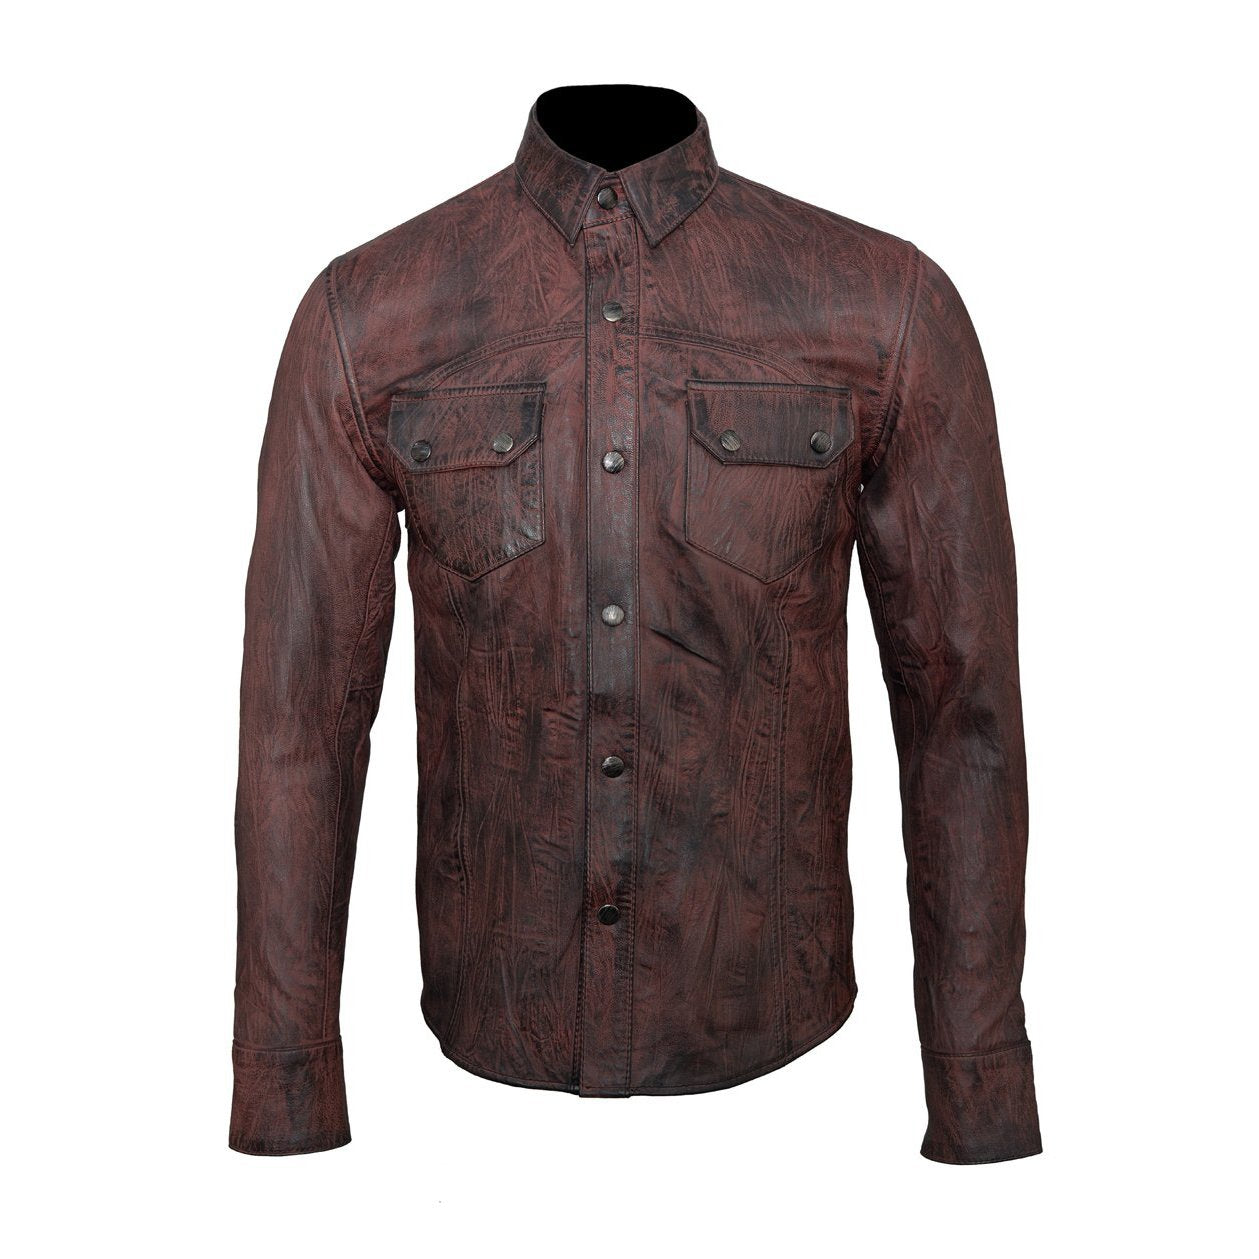 Distressed brown Leather Shirt